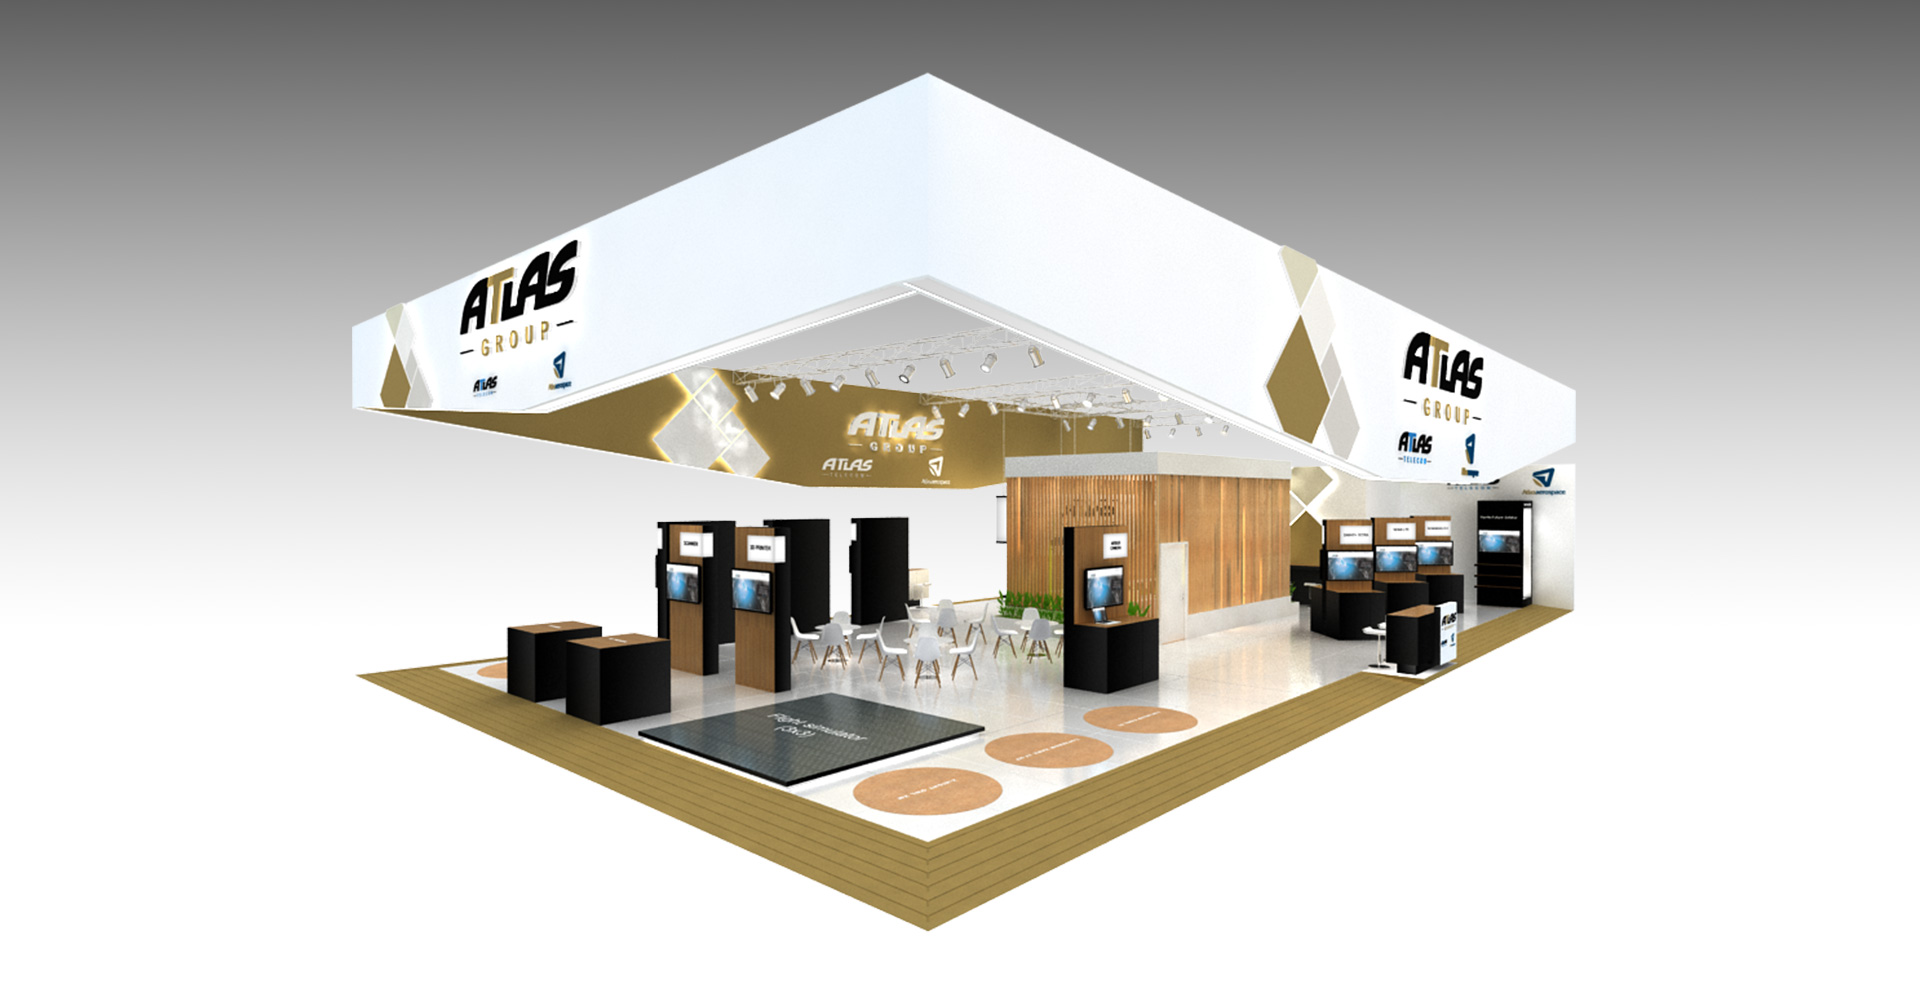 Sungard Exhibition Stand Stands For : Exhibition stand design and production boundless